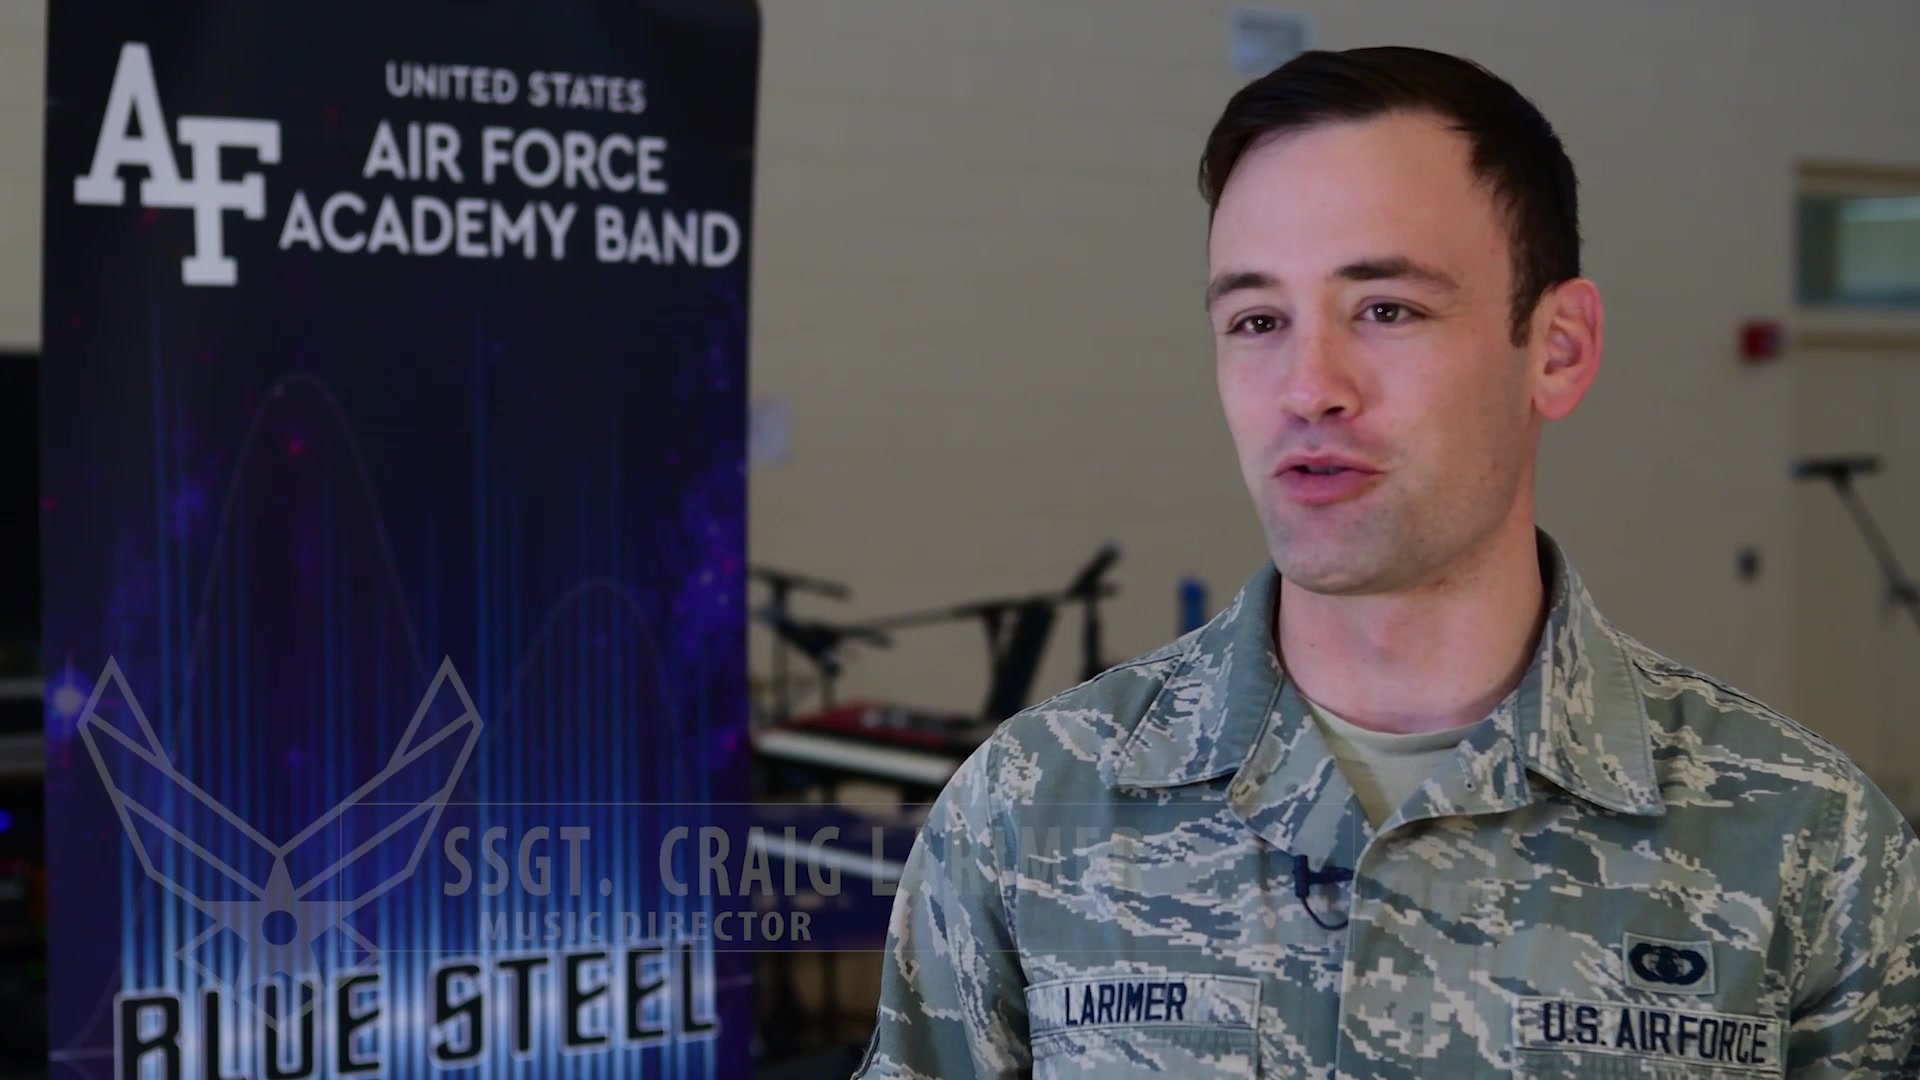 Blue steel touring and performing at local pueblos and communities at Kirtland Air Force Base.